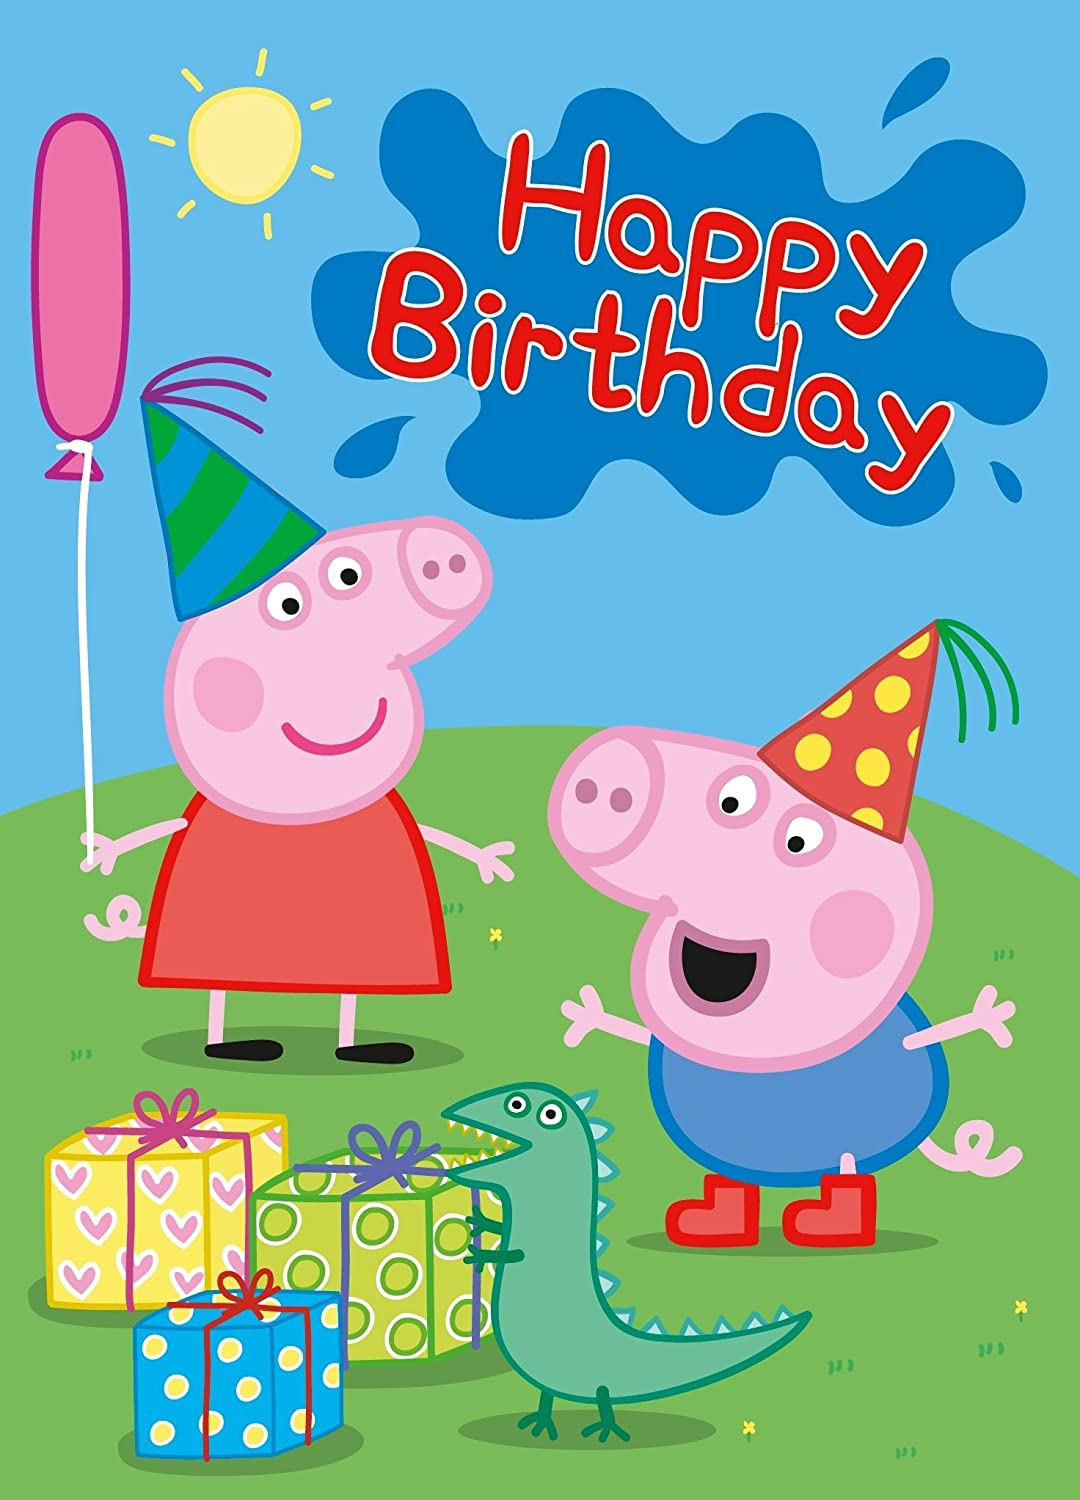 Happy Birthday Keef FPS247 First Person Shooter Forum – Peppa Pig Birthday Card